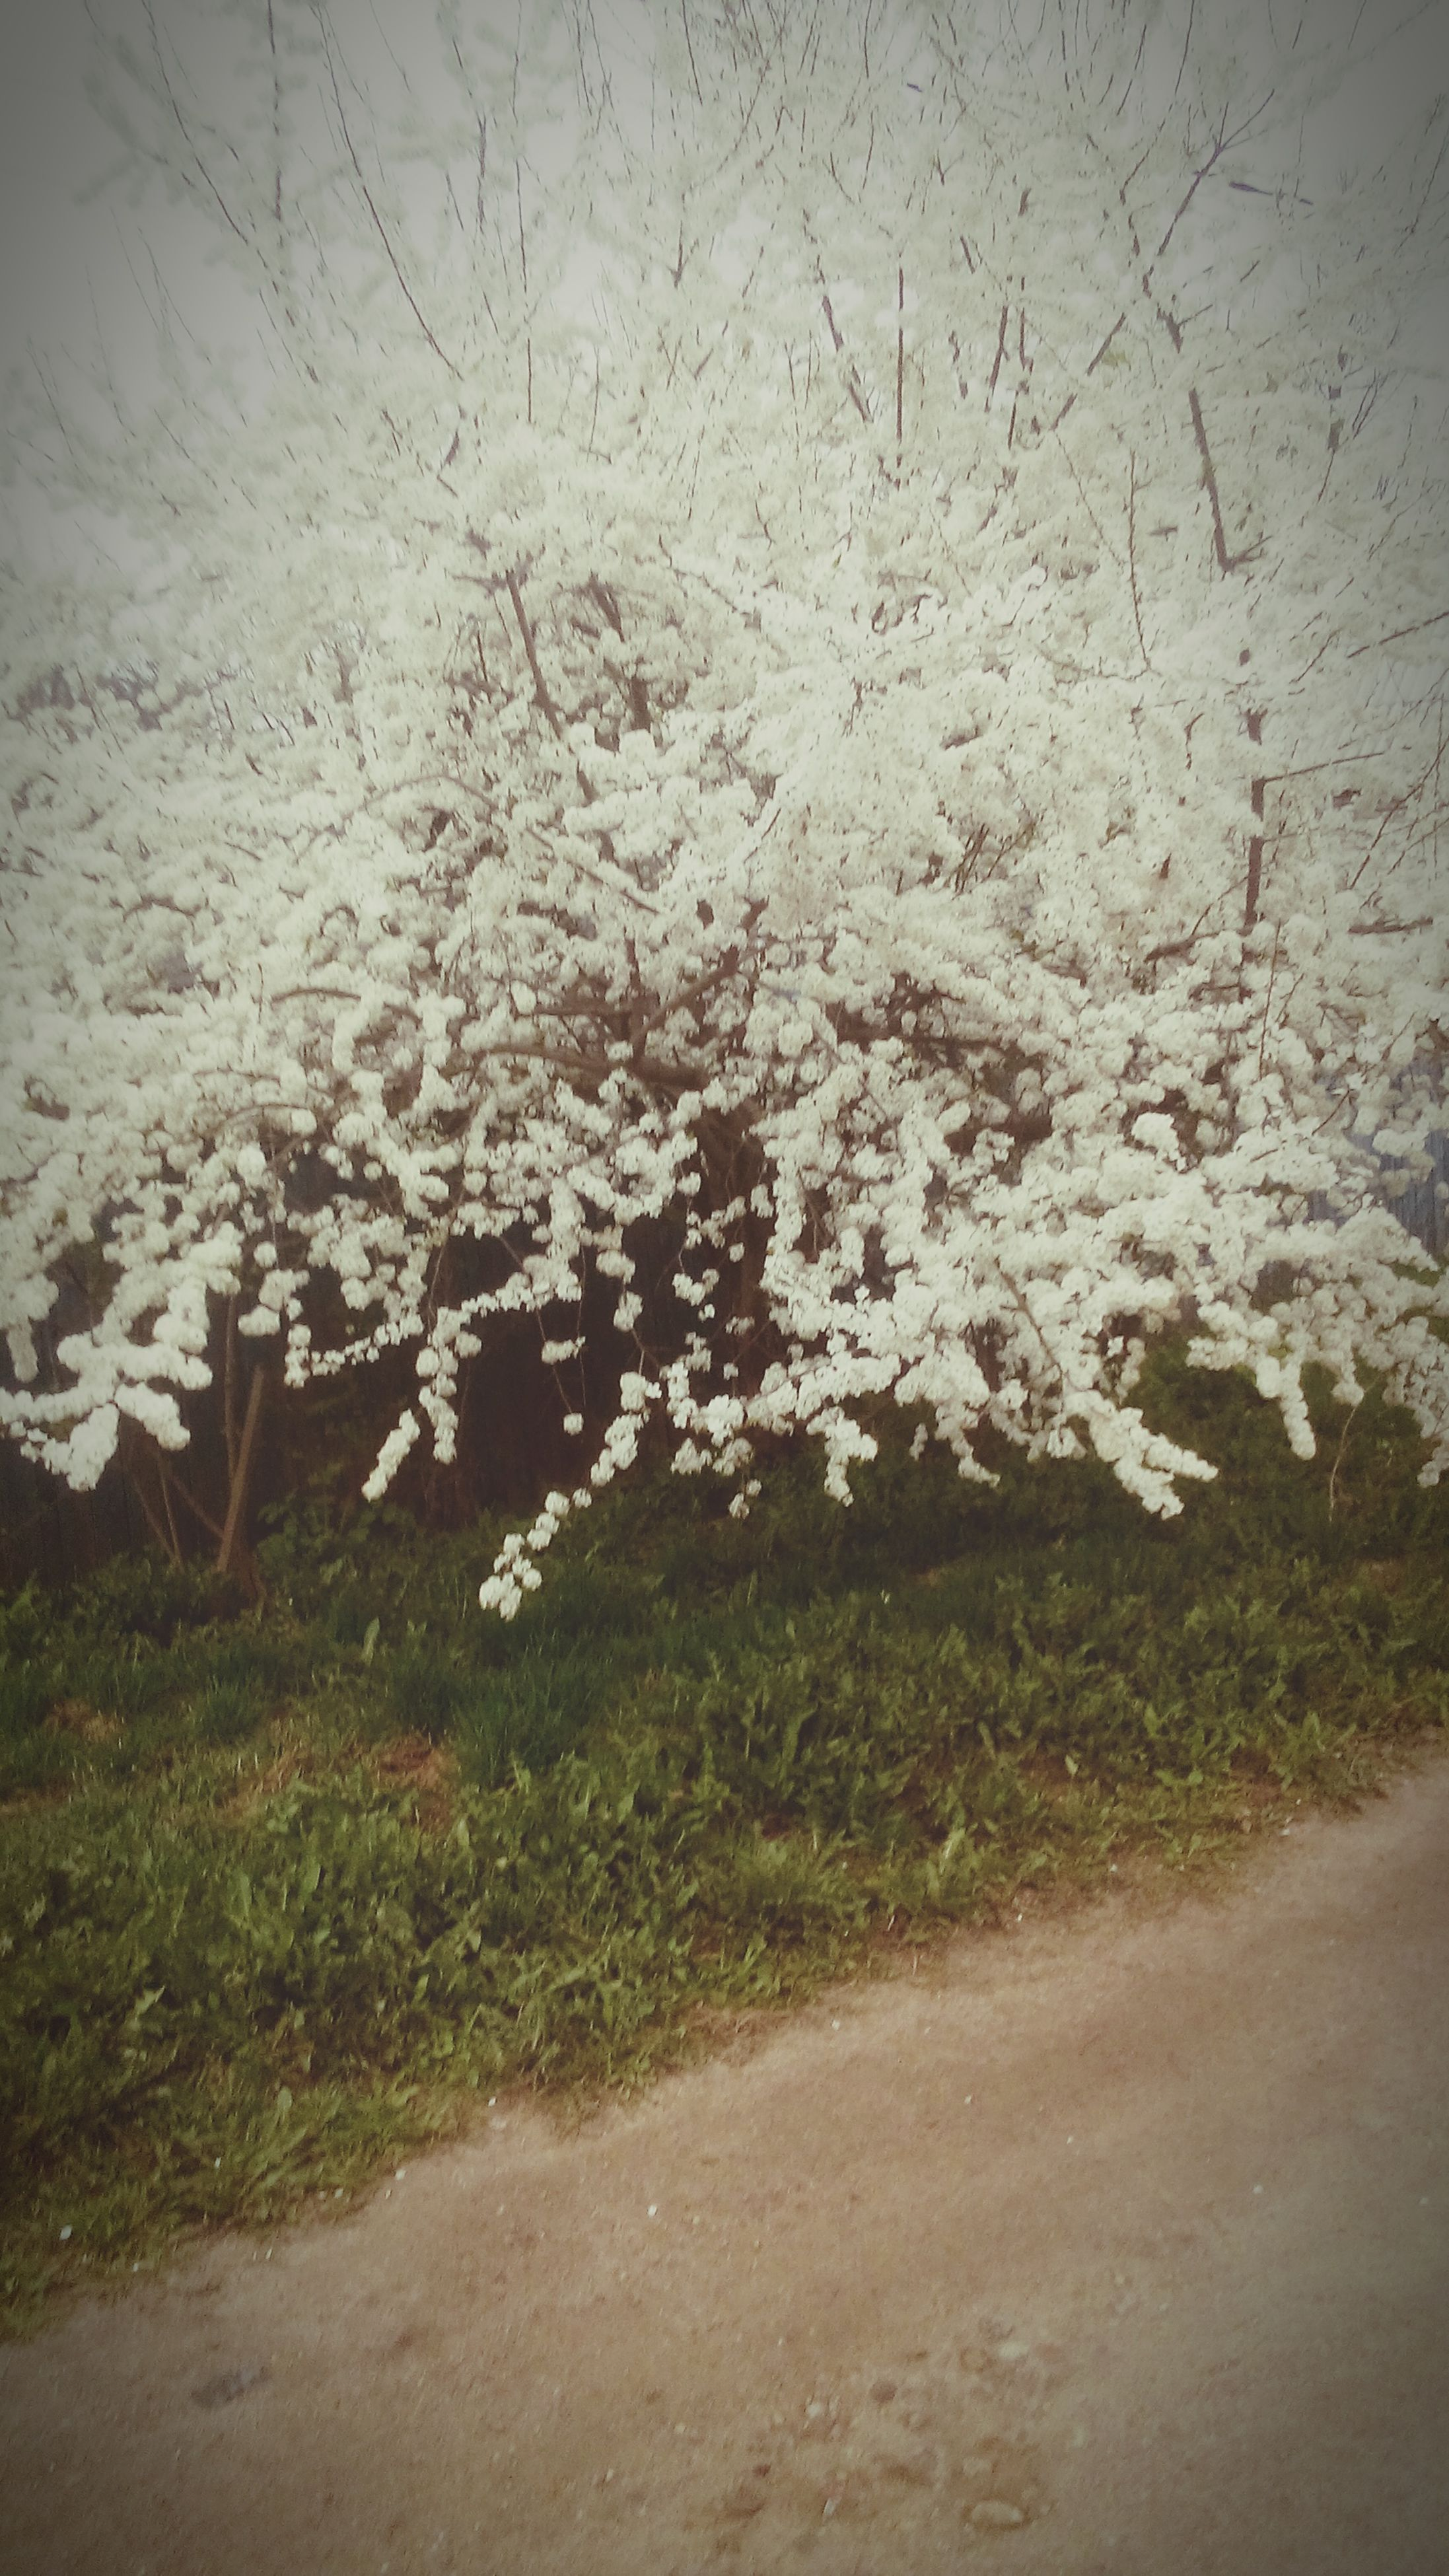 nature, field, winter, white color, growth, grass, cold temperature, snow, tranquility, beauty in nature, plant, season, day, flower, tree, no people, weather, outdoors, branch, road